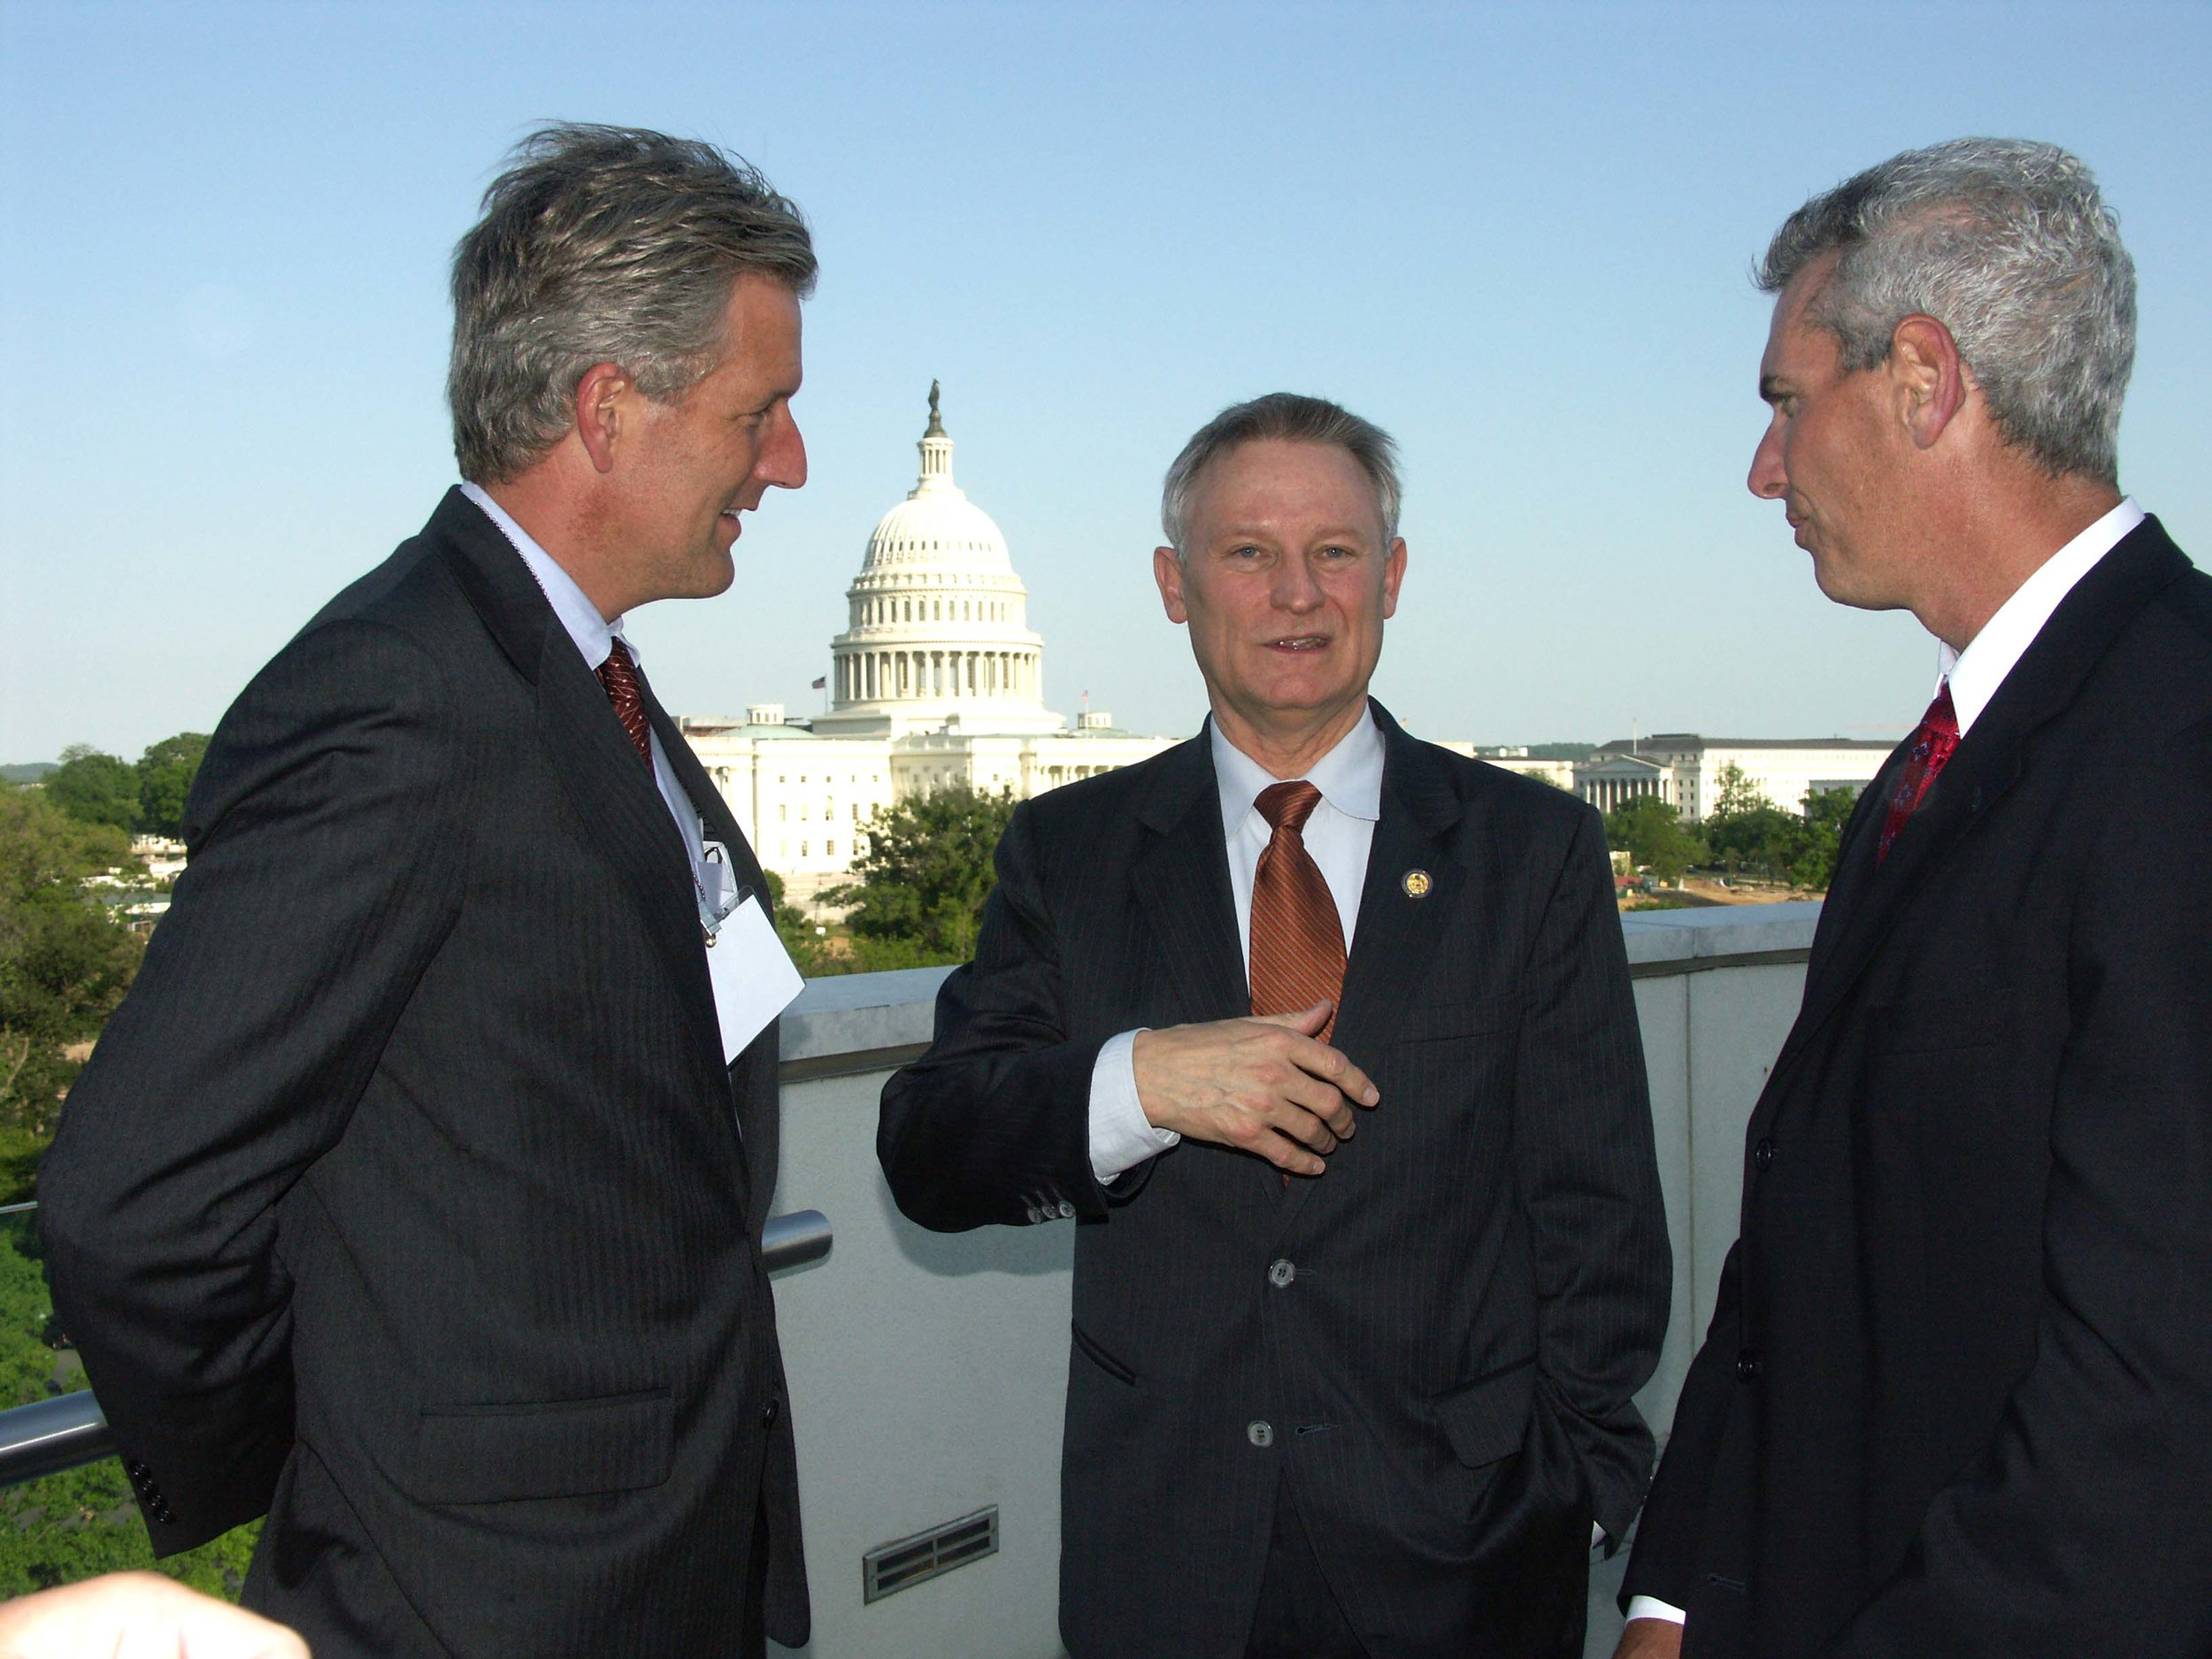 Steve Andrews and Steve Gardner meeting with House Finance Chairman Spencer Bachus